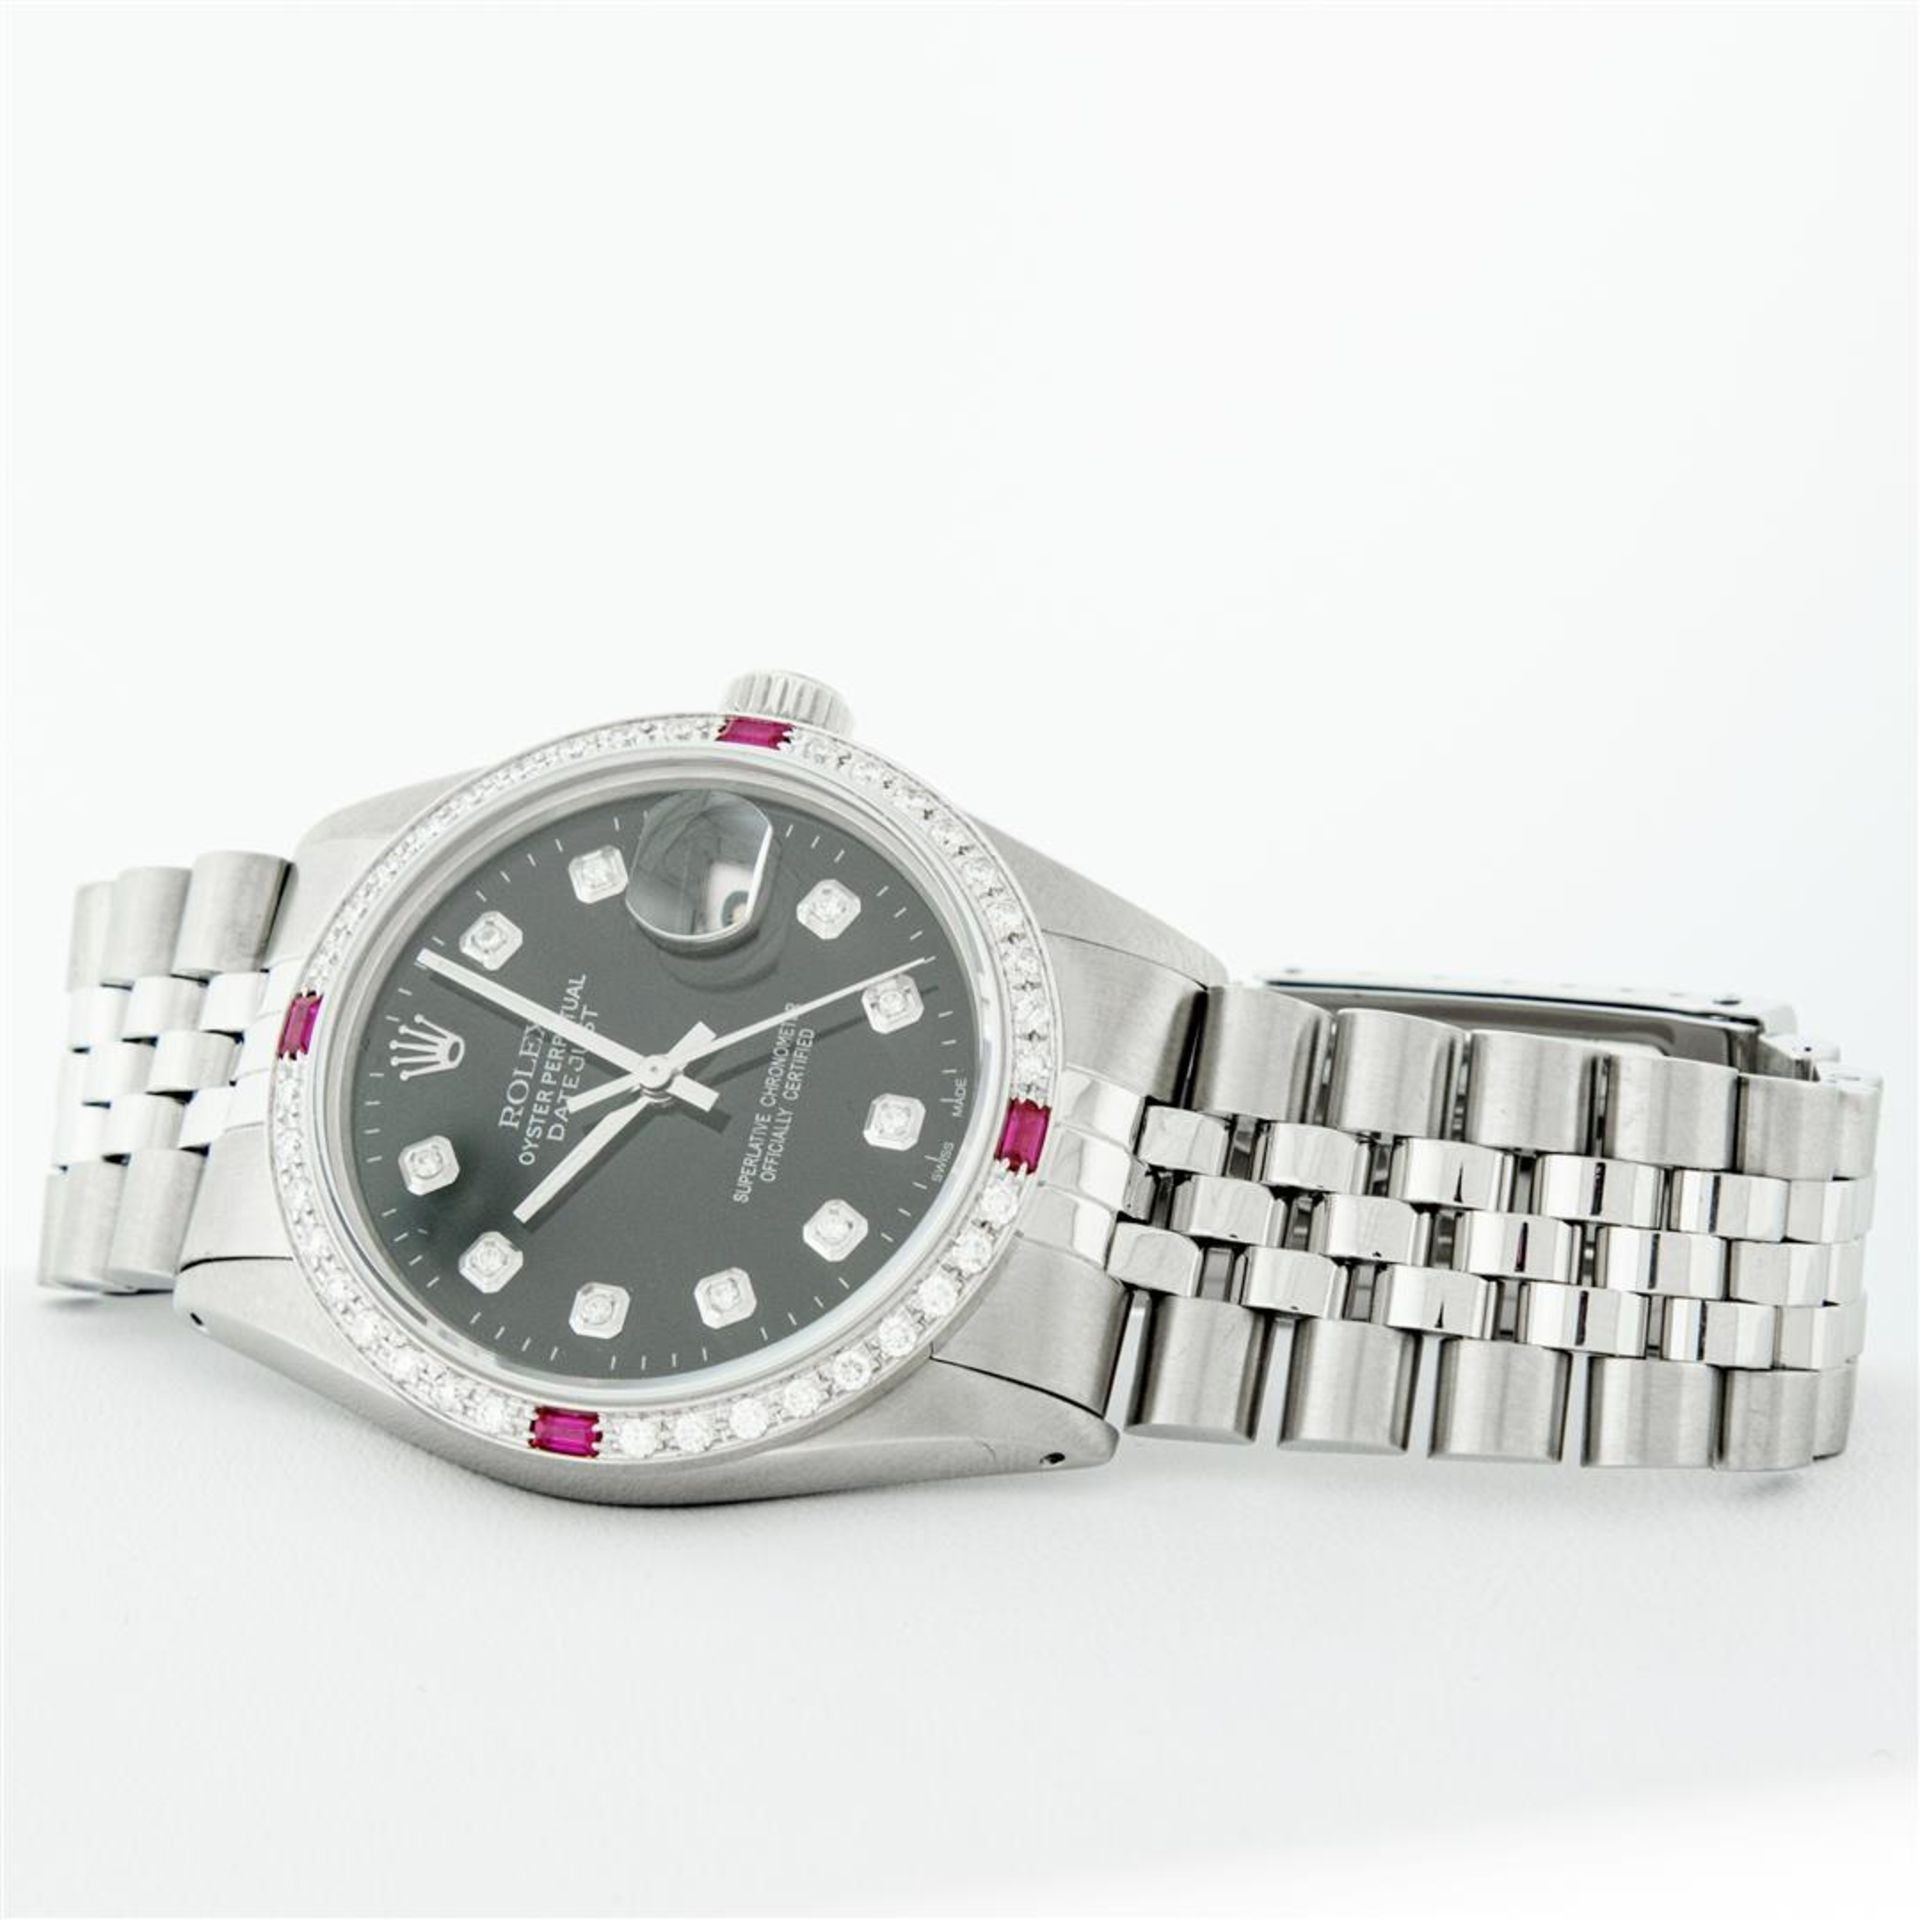 Rolex Mens Stainless Steel Black Diamond & Ruby 36MM Datejust Wristwatch Oyster - Image 5 of 9